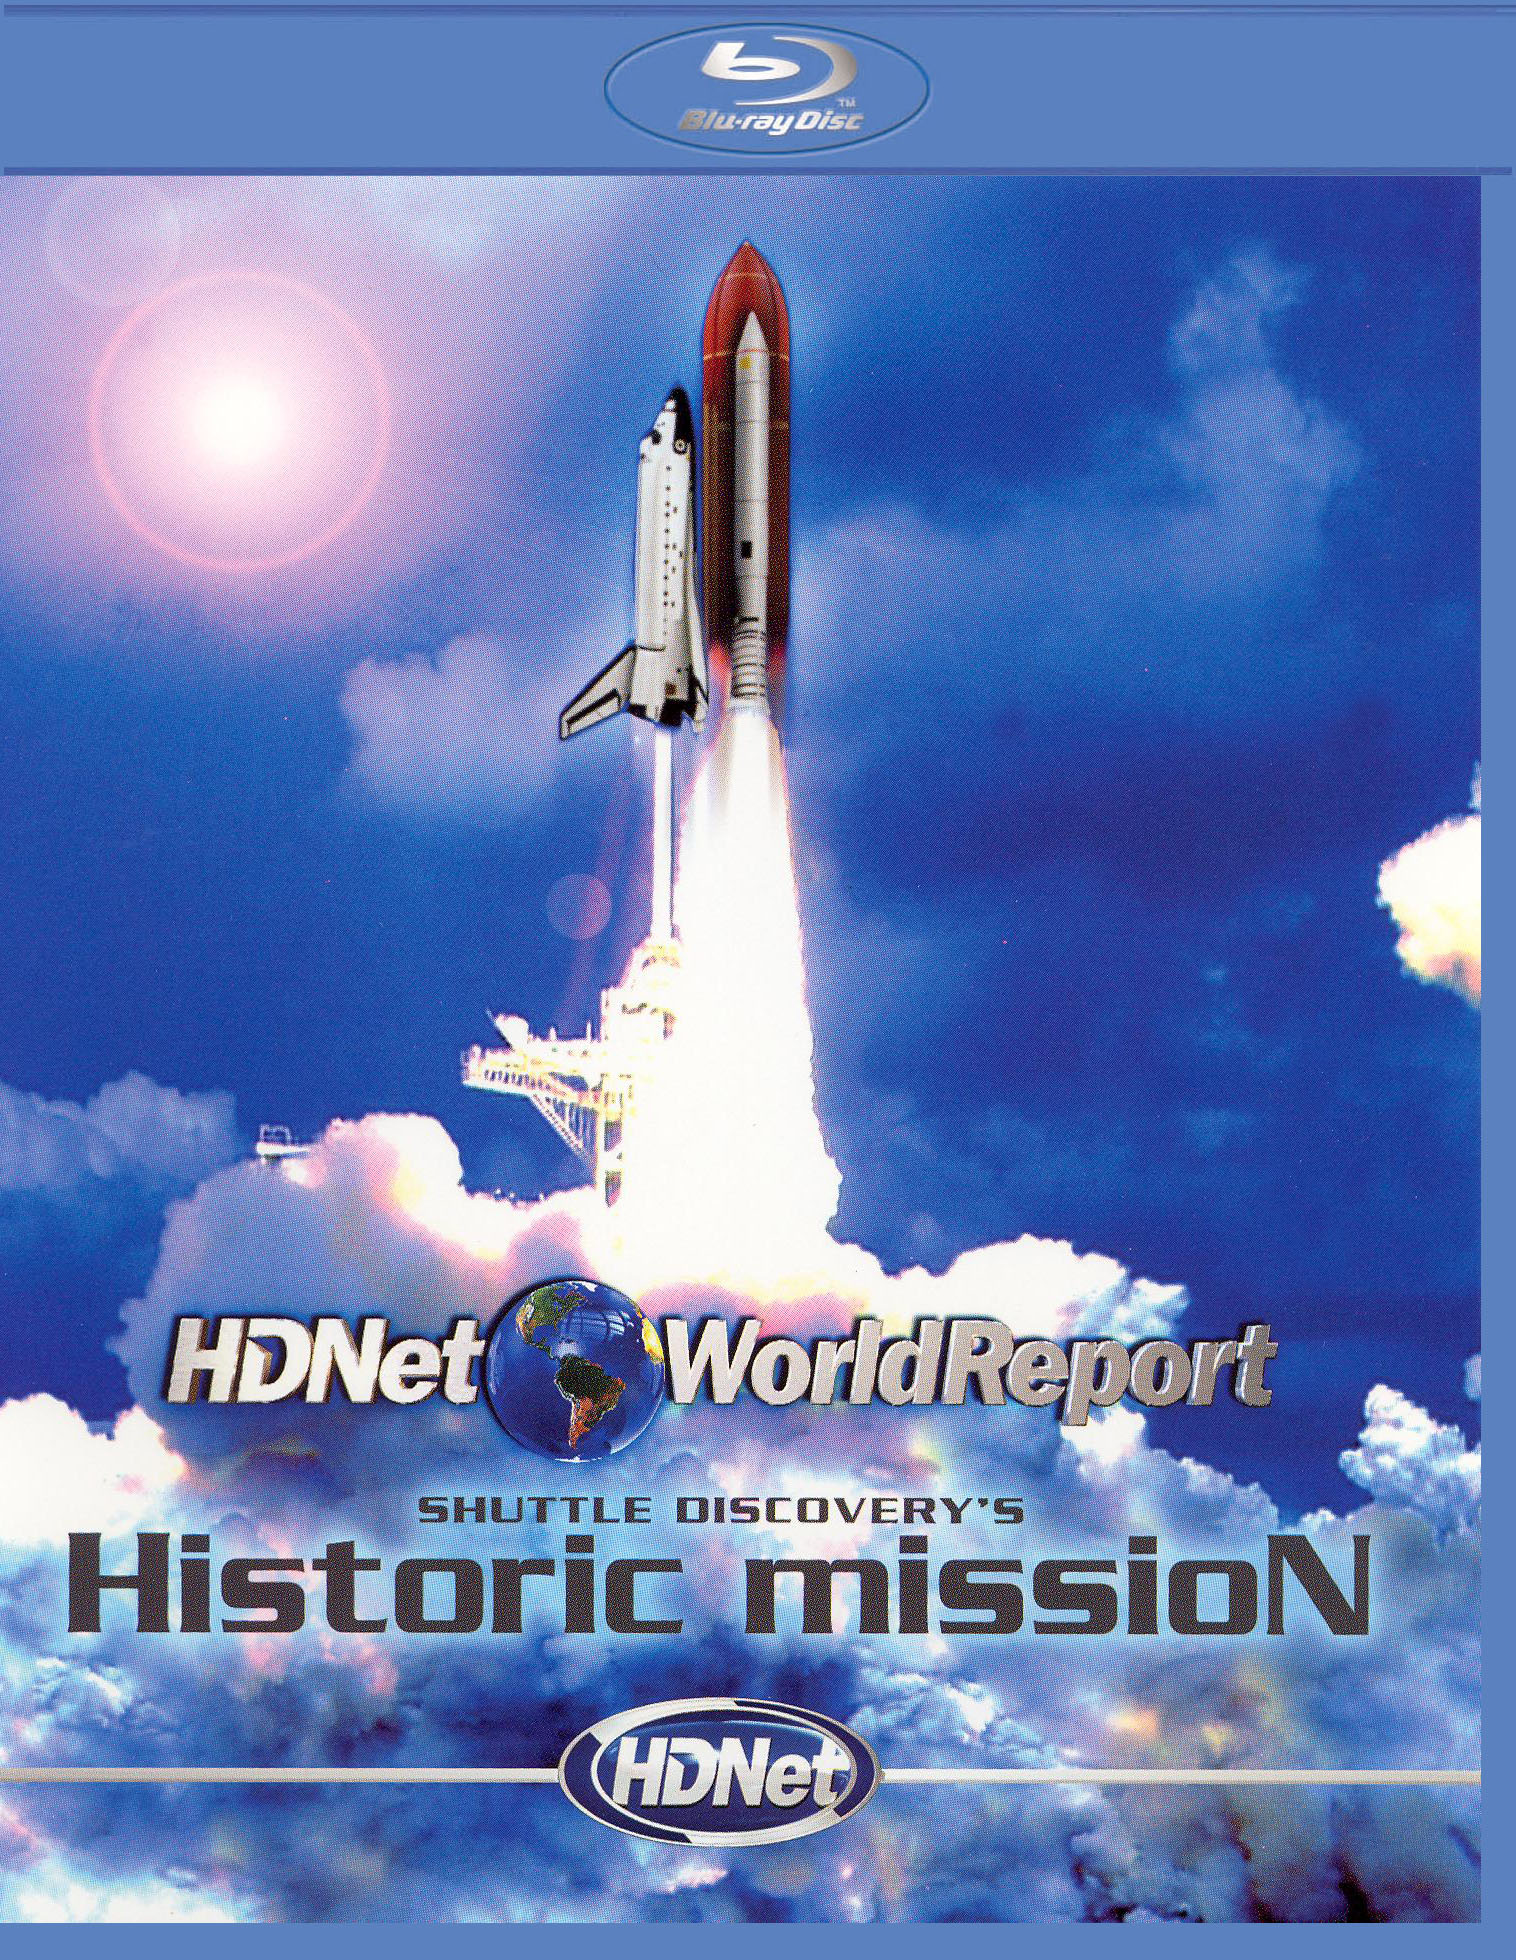 HDNet World Report Special: Shuttle Discovery's Historic Mission